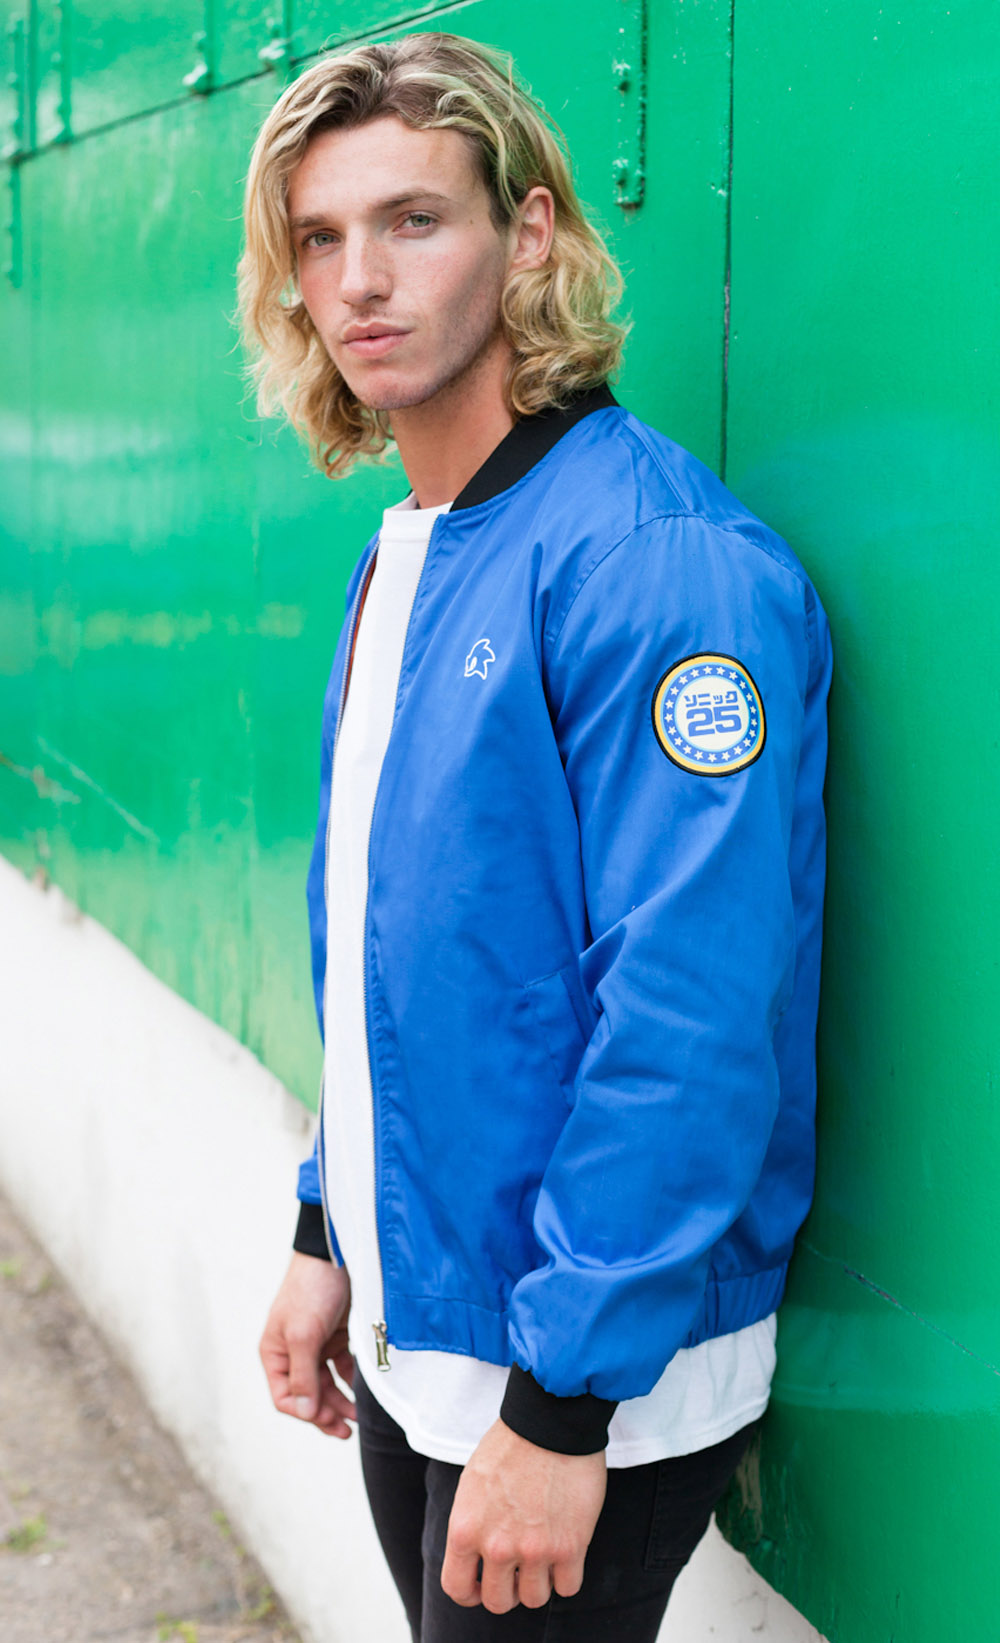 Sonic Bomber Jacket Insert Coin Clothing